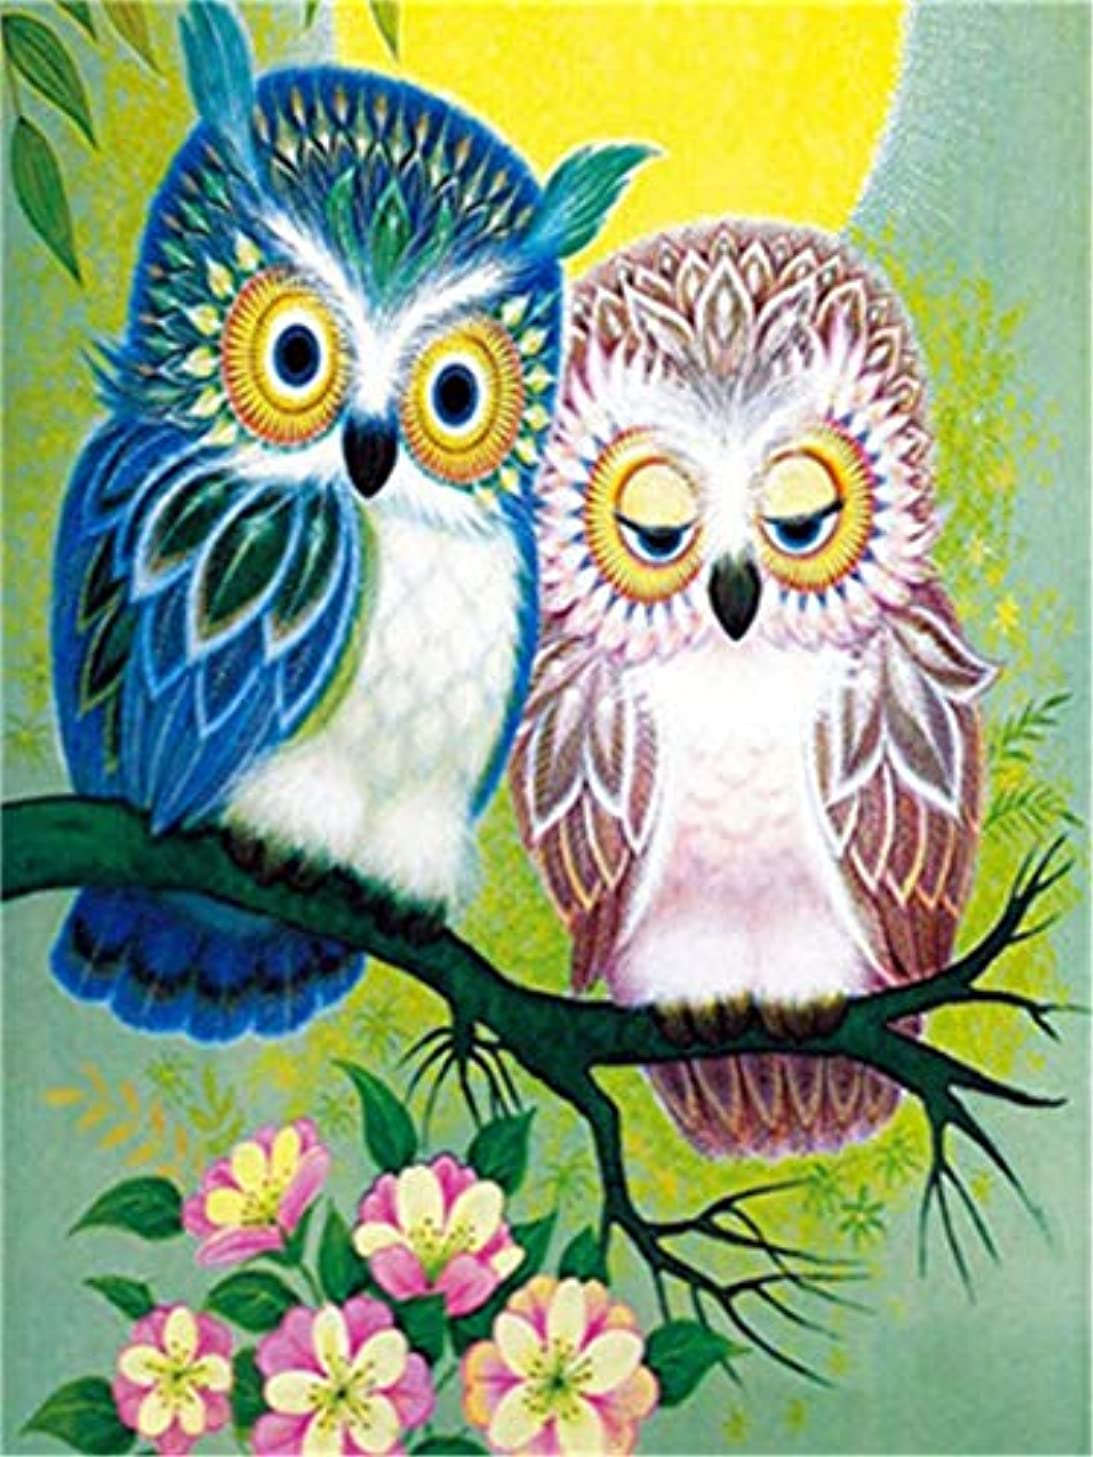 Paint by Numbers Kits DIY Oil Painting Home Decor Wall Value Gift - Two Owls 16X20 Inch (Frame)